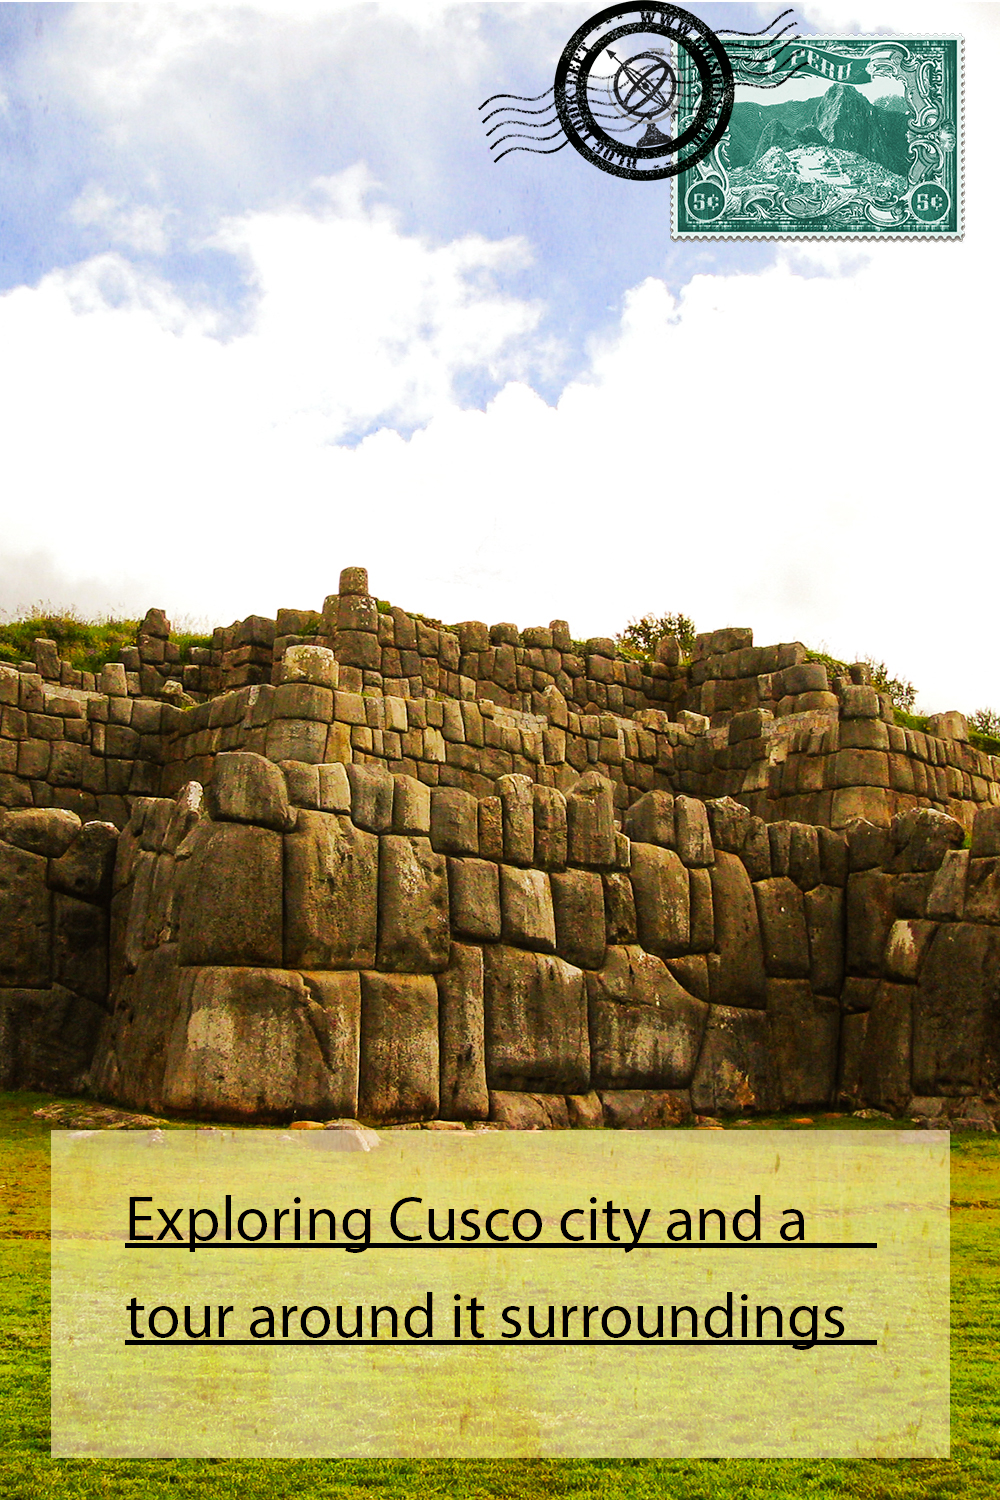 Exploring Cusco city and a tour around it surroundings